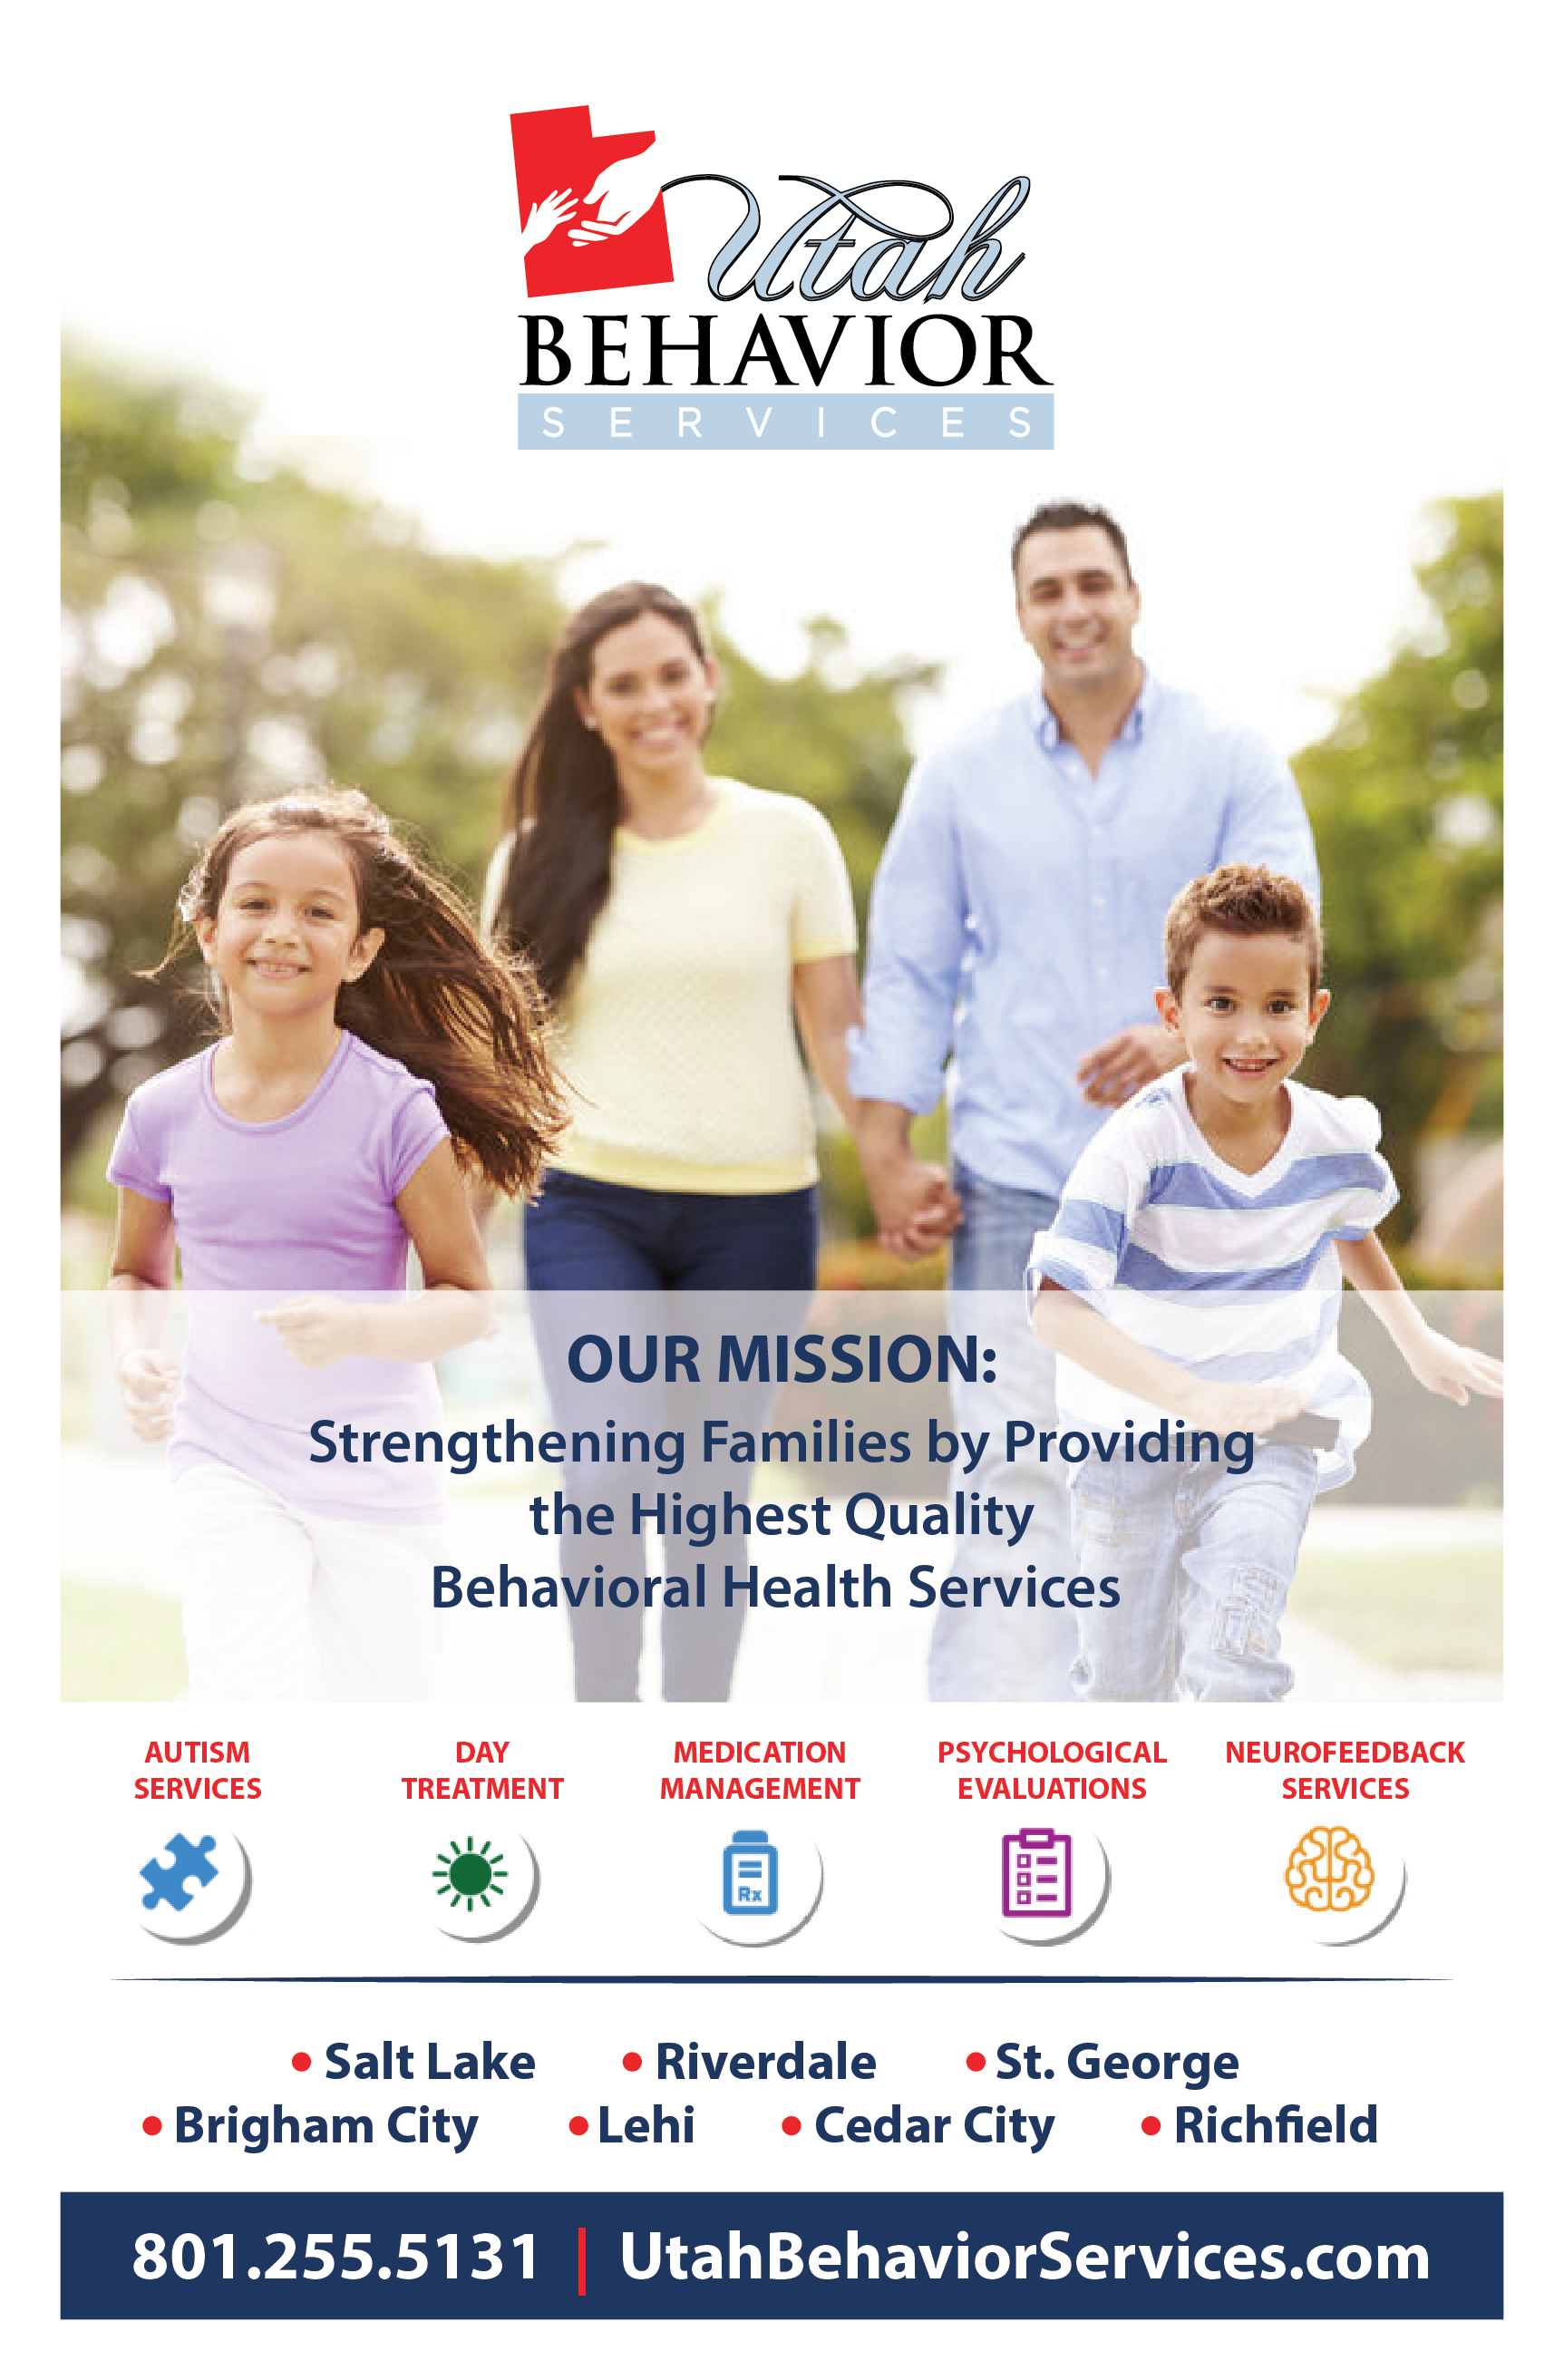 Utah Behavior Services